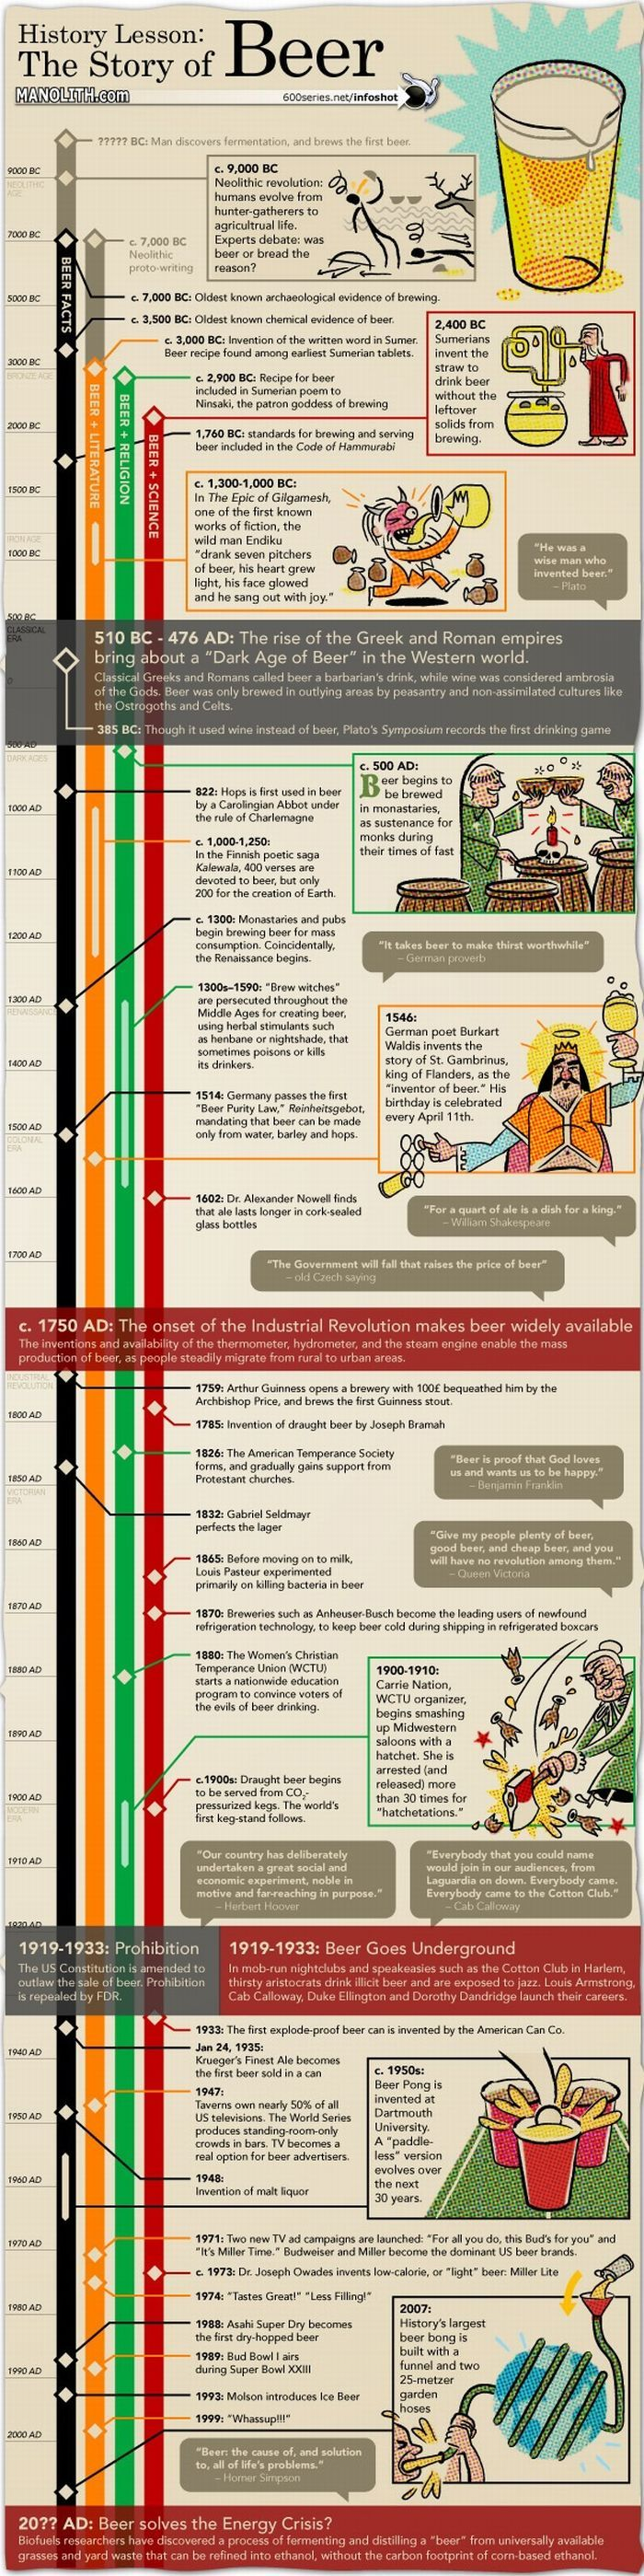 History of Beer.